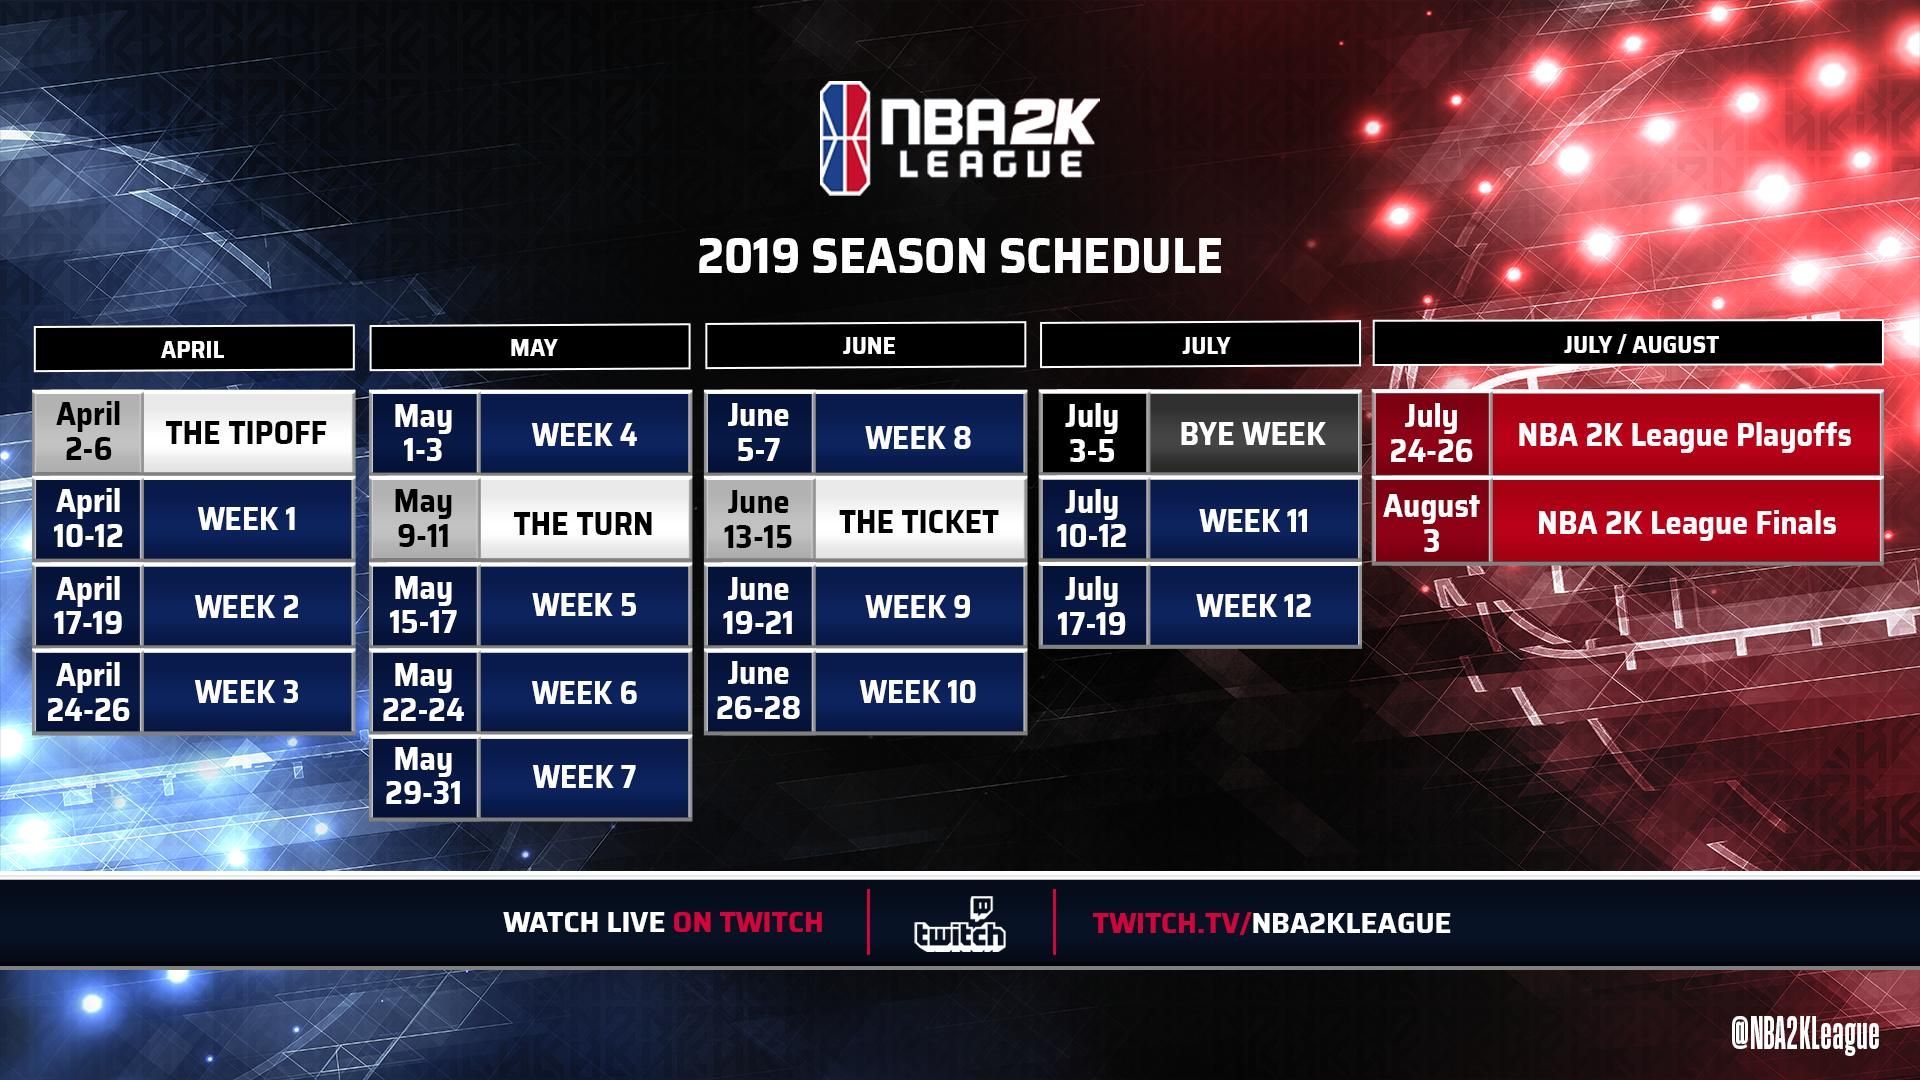 nba 2k league schedule for 2019 season